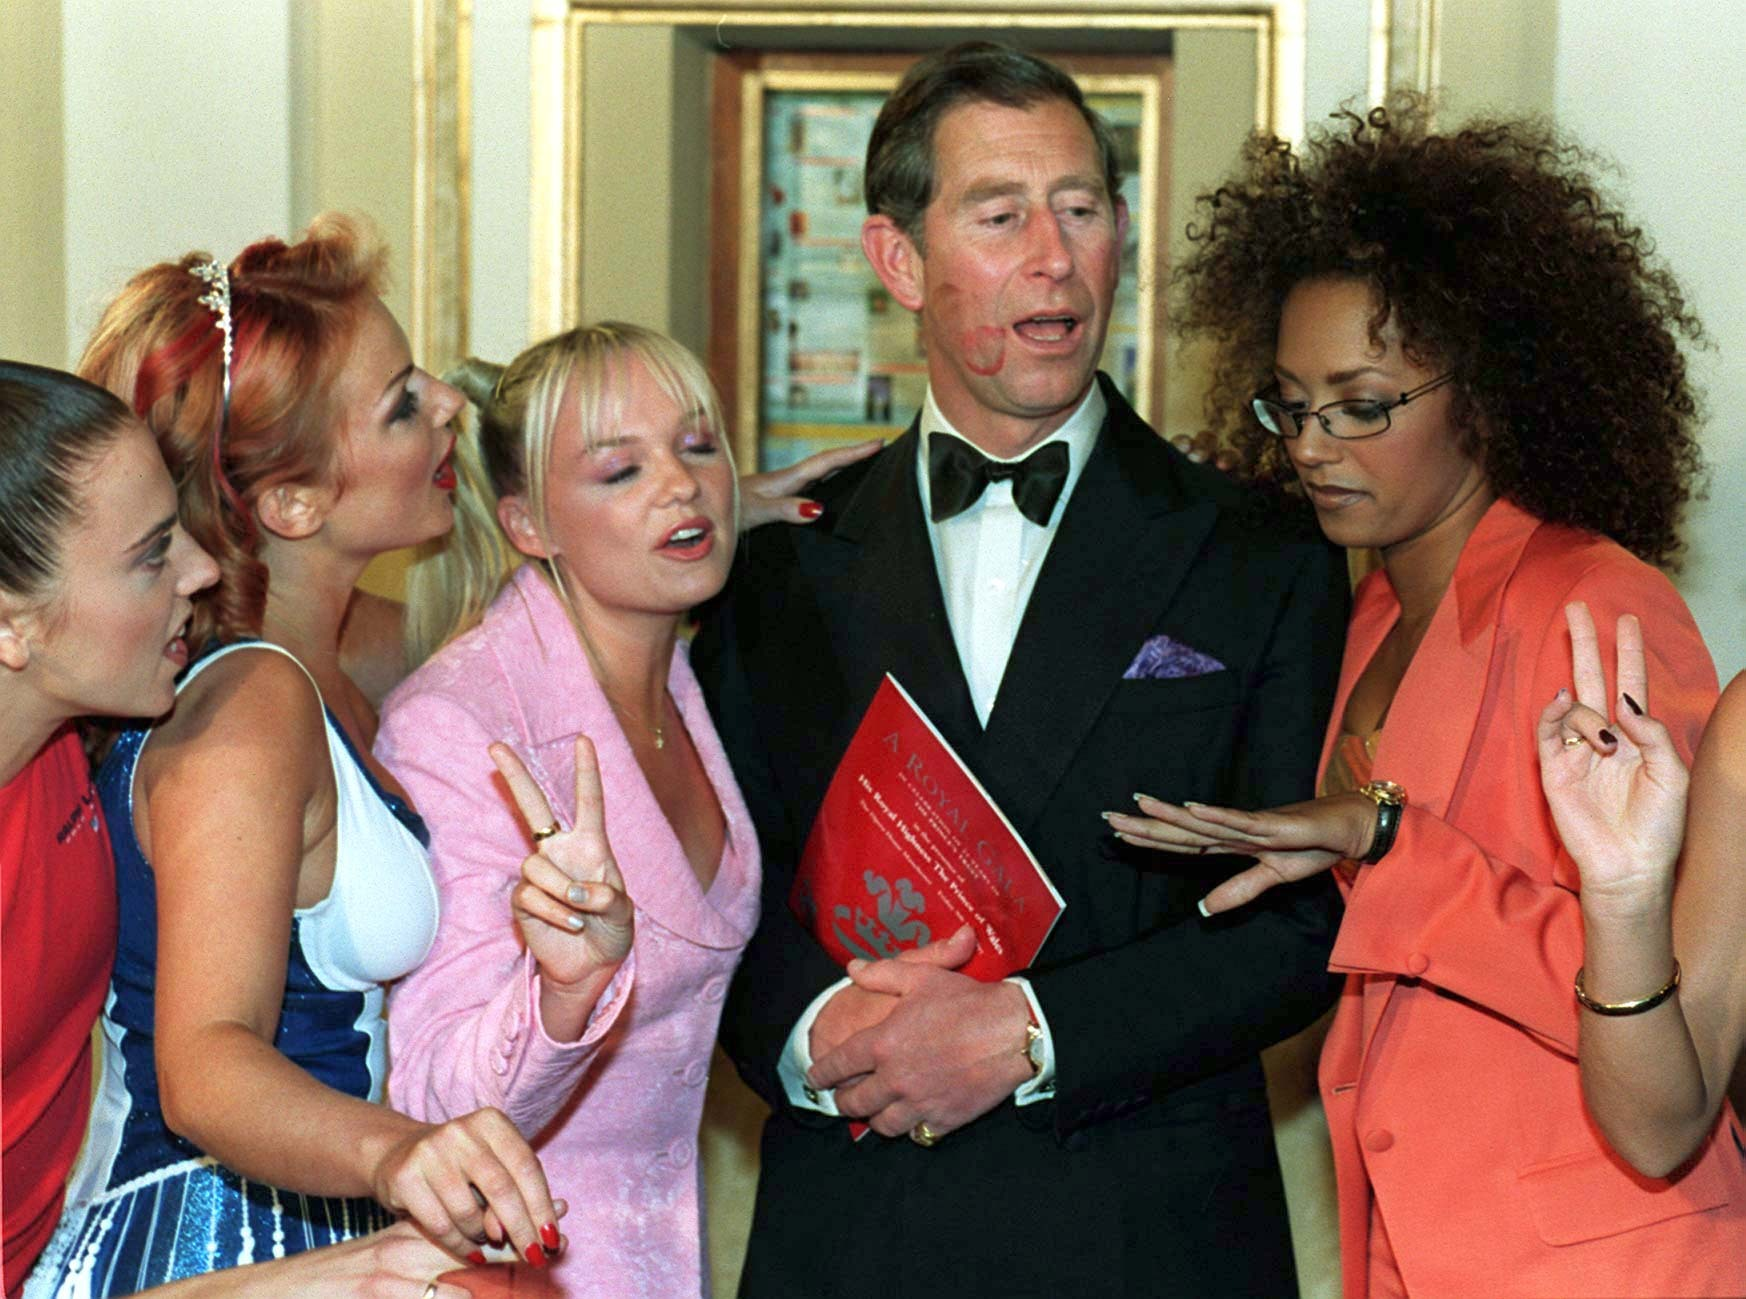 Prince of Wales joins the Spice Girls before the Royal Gala for The Princes Trust in 1997. (John Giles/PA).